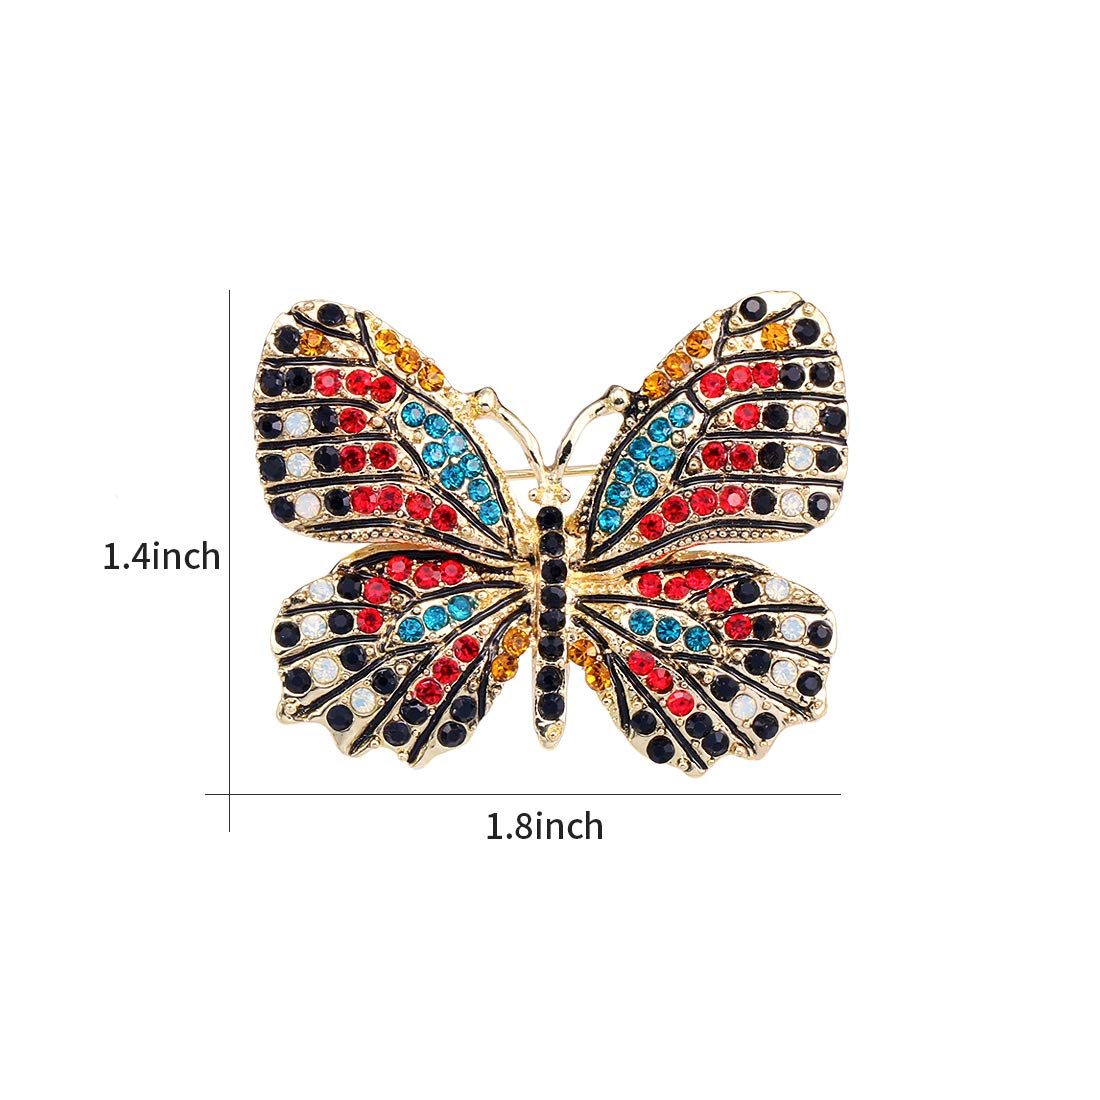 WeimanJewelry Lot6pcs Multicolor Rhinestone Crystal Butterfly Brooch Pin Set for Women by WeimanJewelry (Image #3)